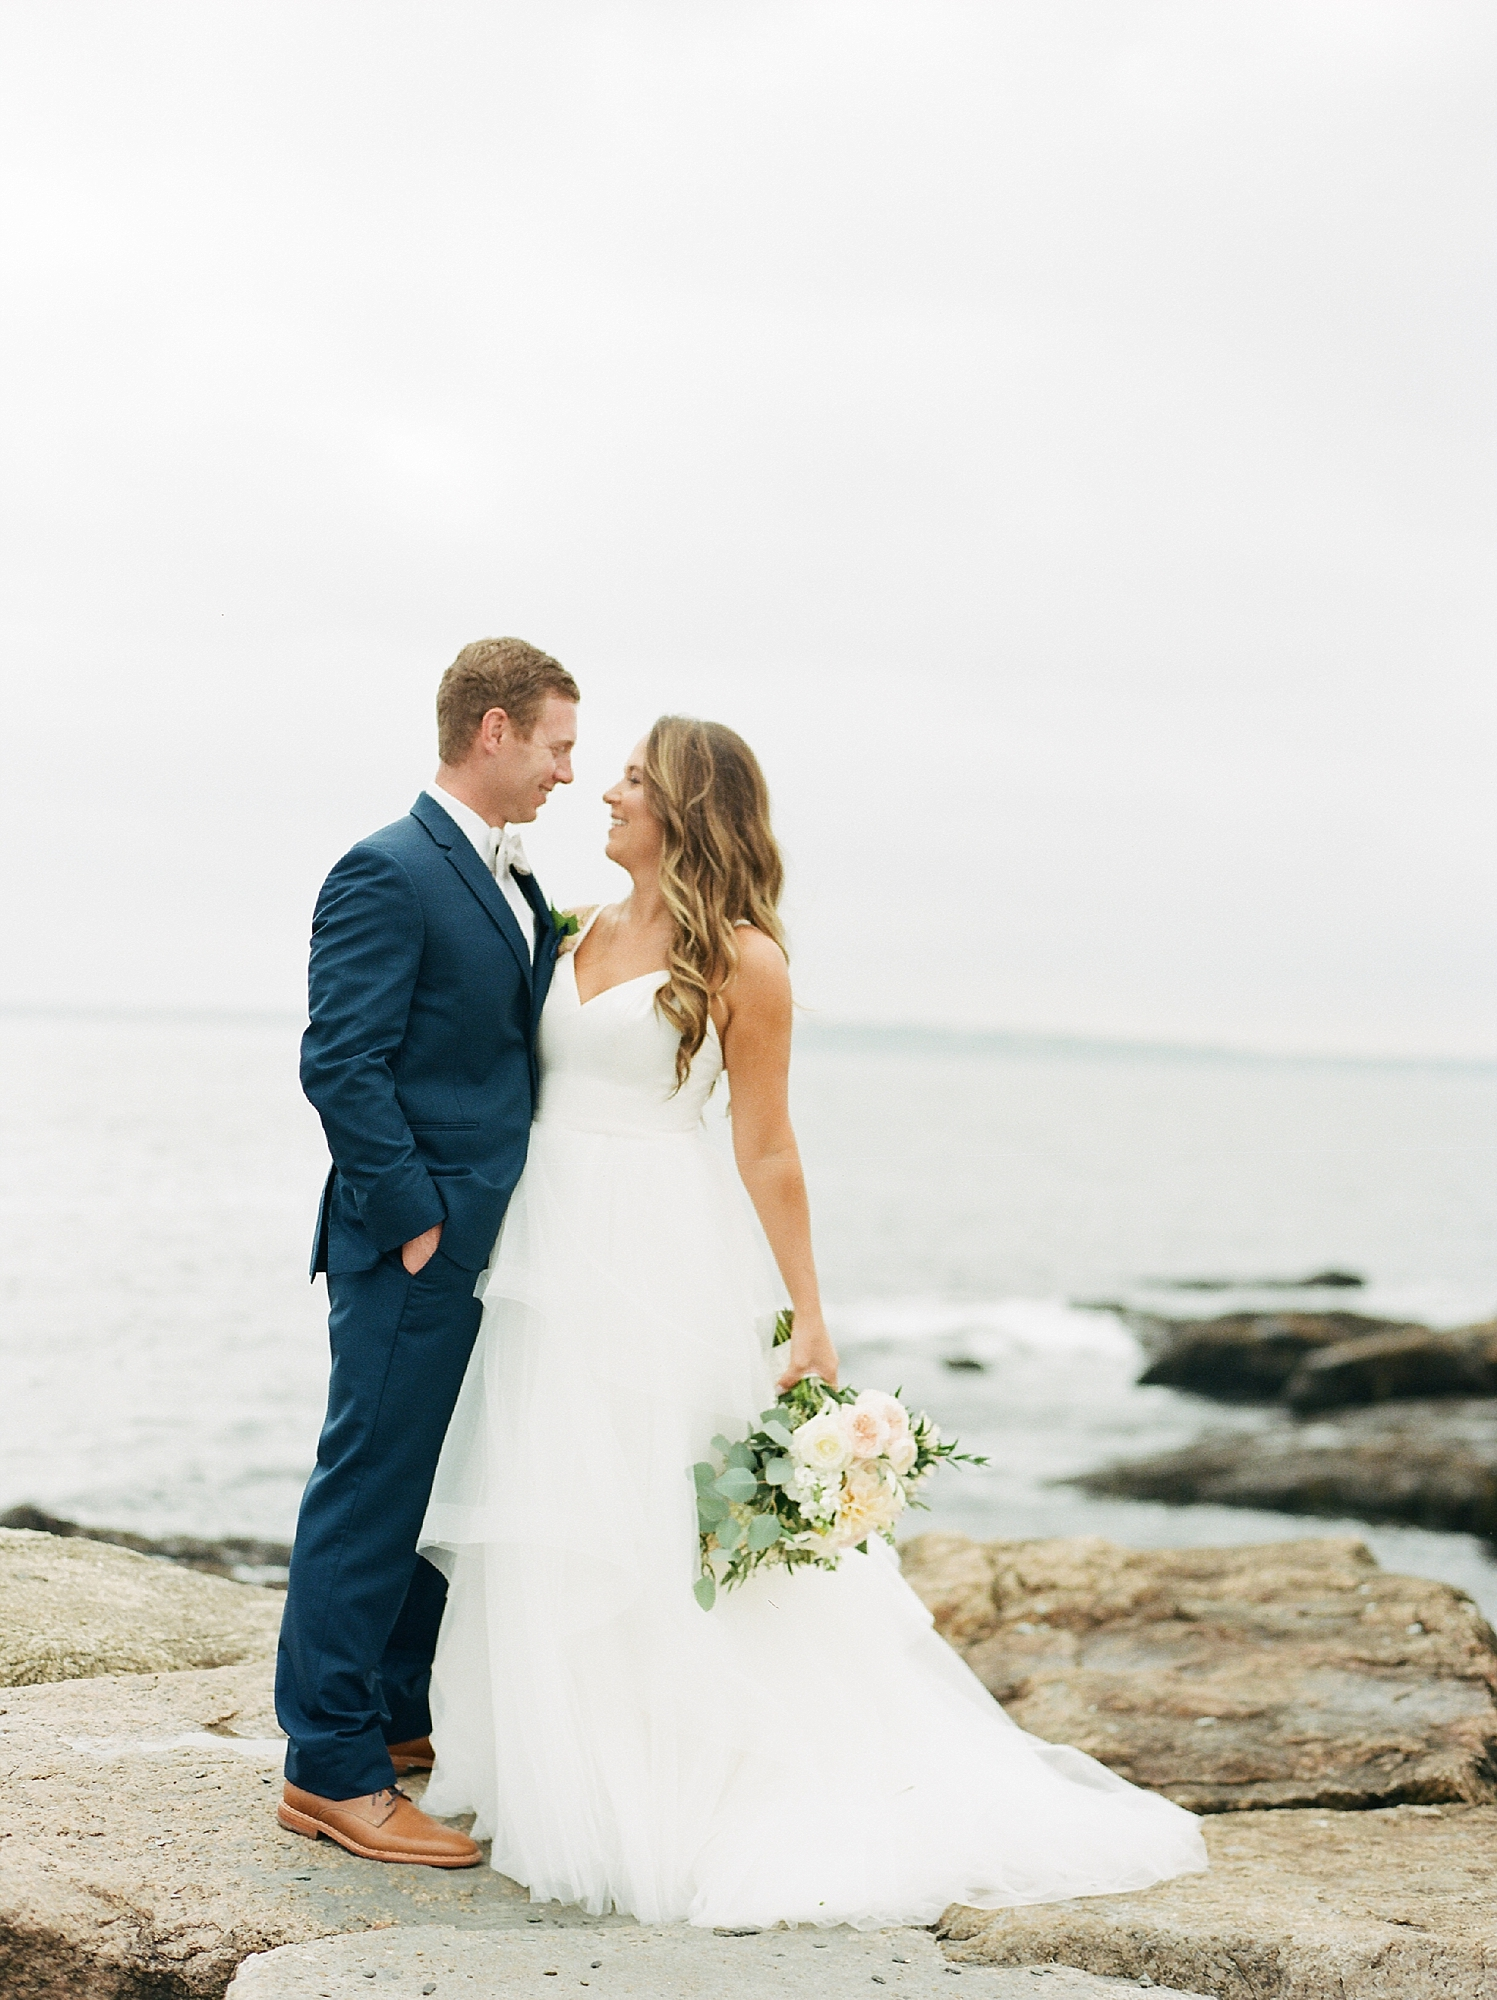 Coastal and Authentic Film Wedding Photography in Newport Rhode Island by Magdalena Studios 0027